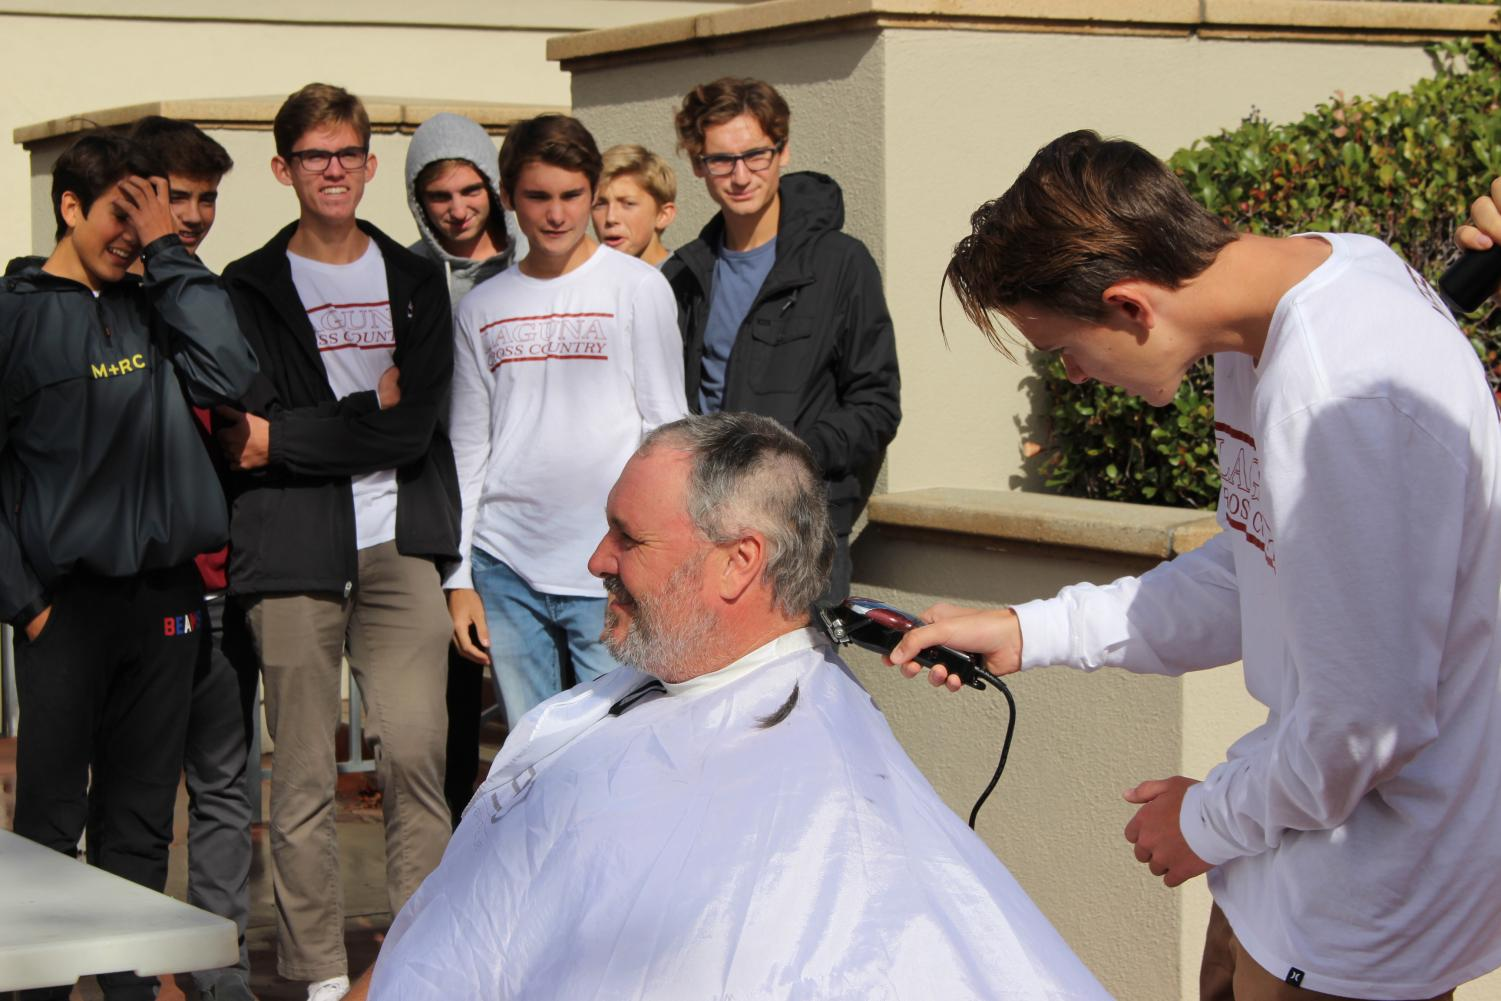 The varsity cross country team watches as Logan Brooks shaves Coach Wittkop's head in front of the whole school at lunch. In the beginning of the season, Wittkop promised his players that if they won CIF and state they could shave his head.